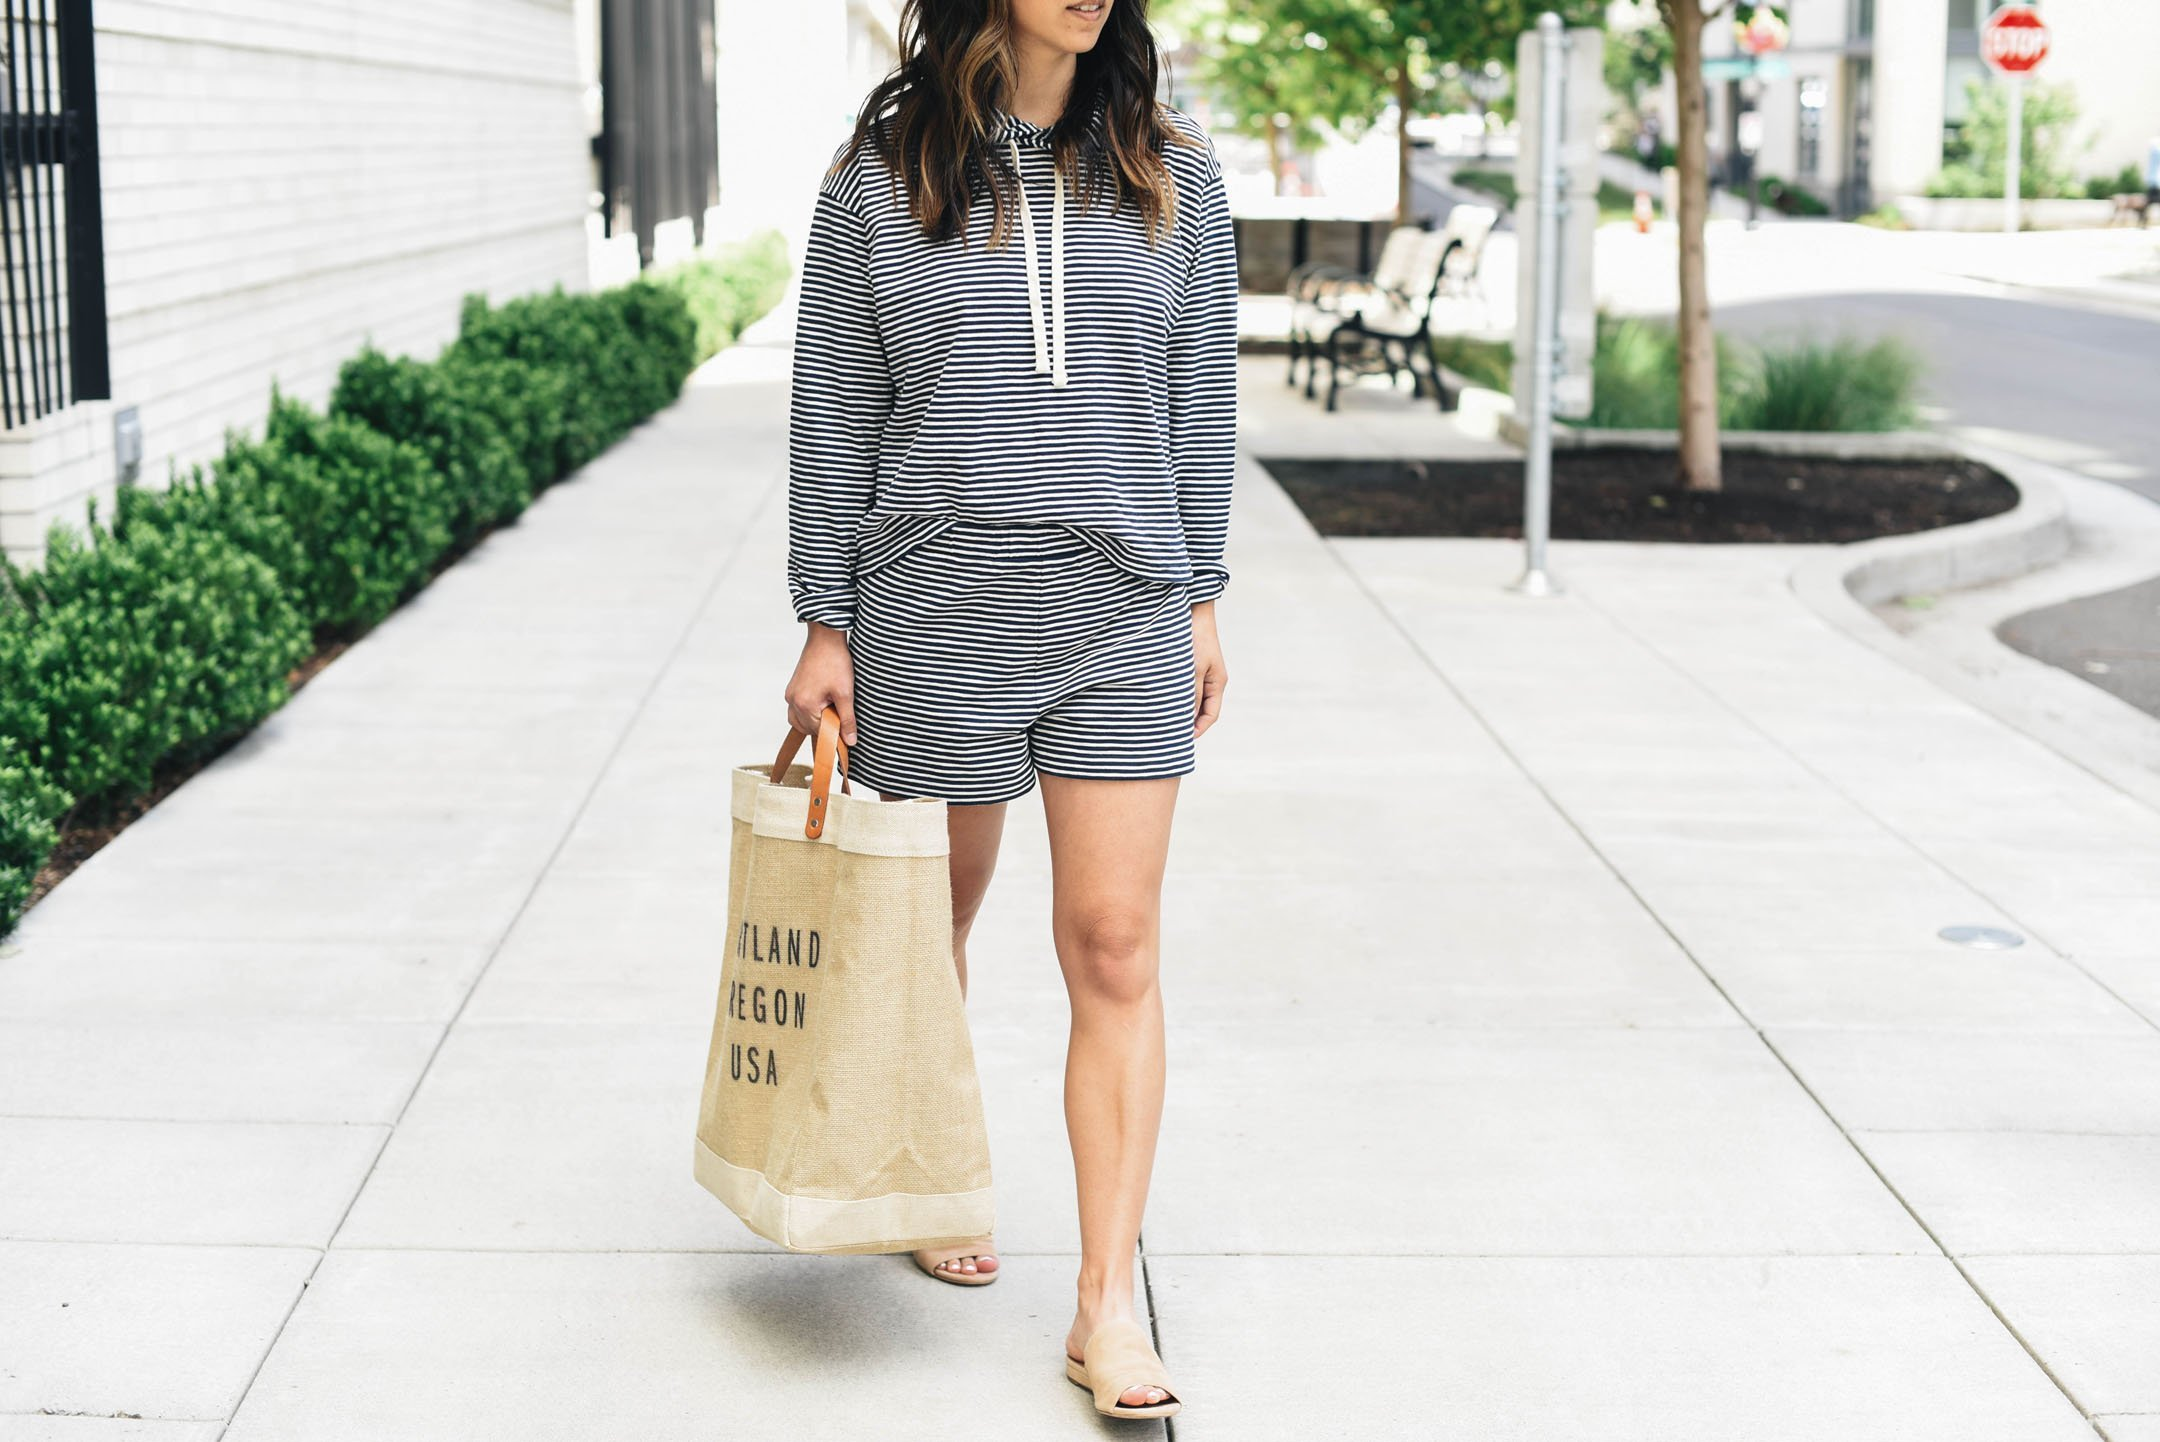 Apolis Portland Oregon tote